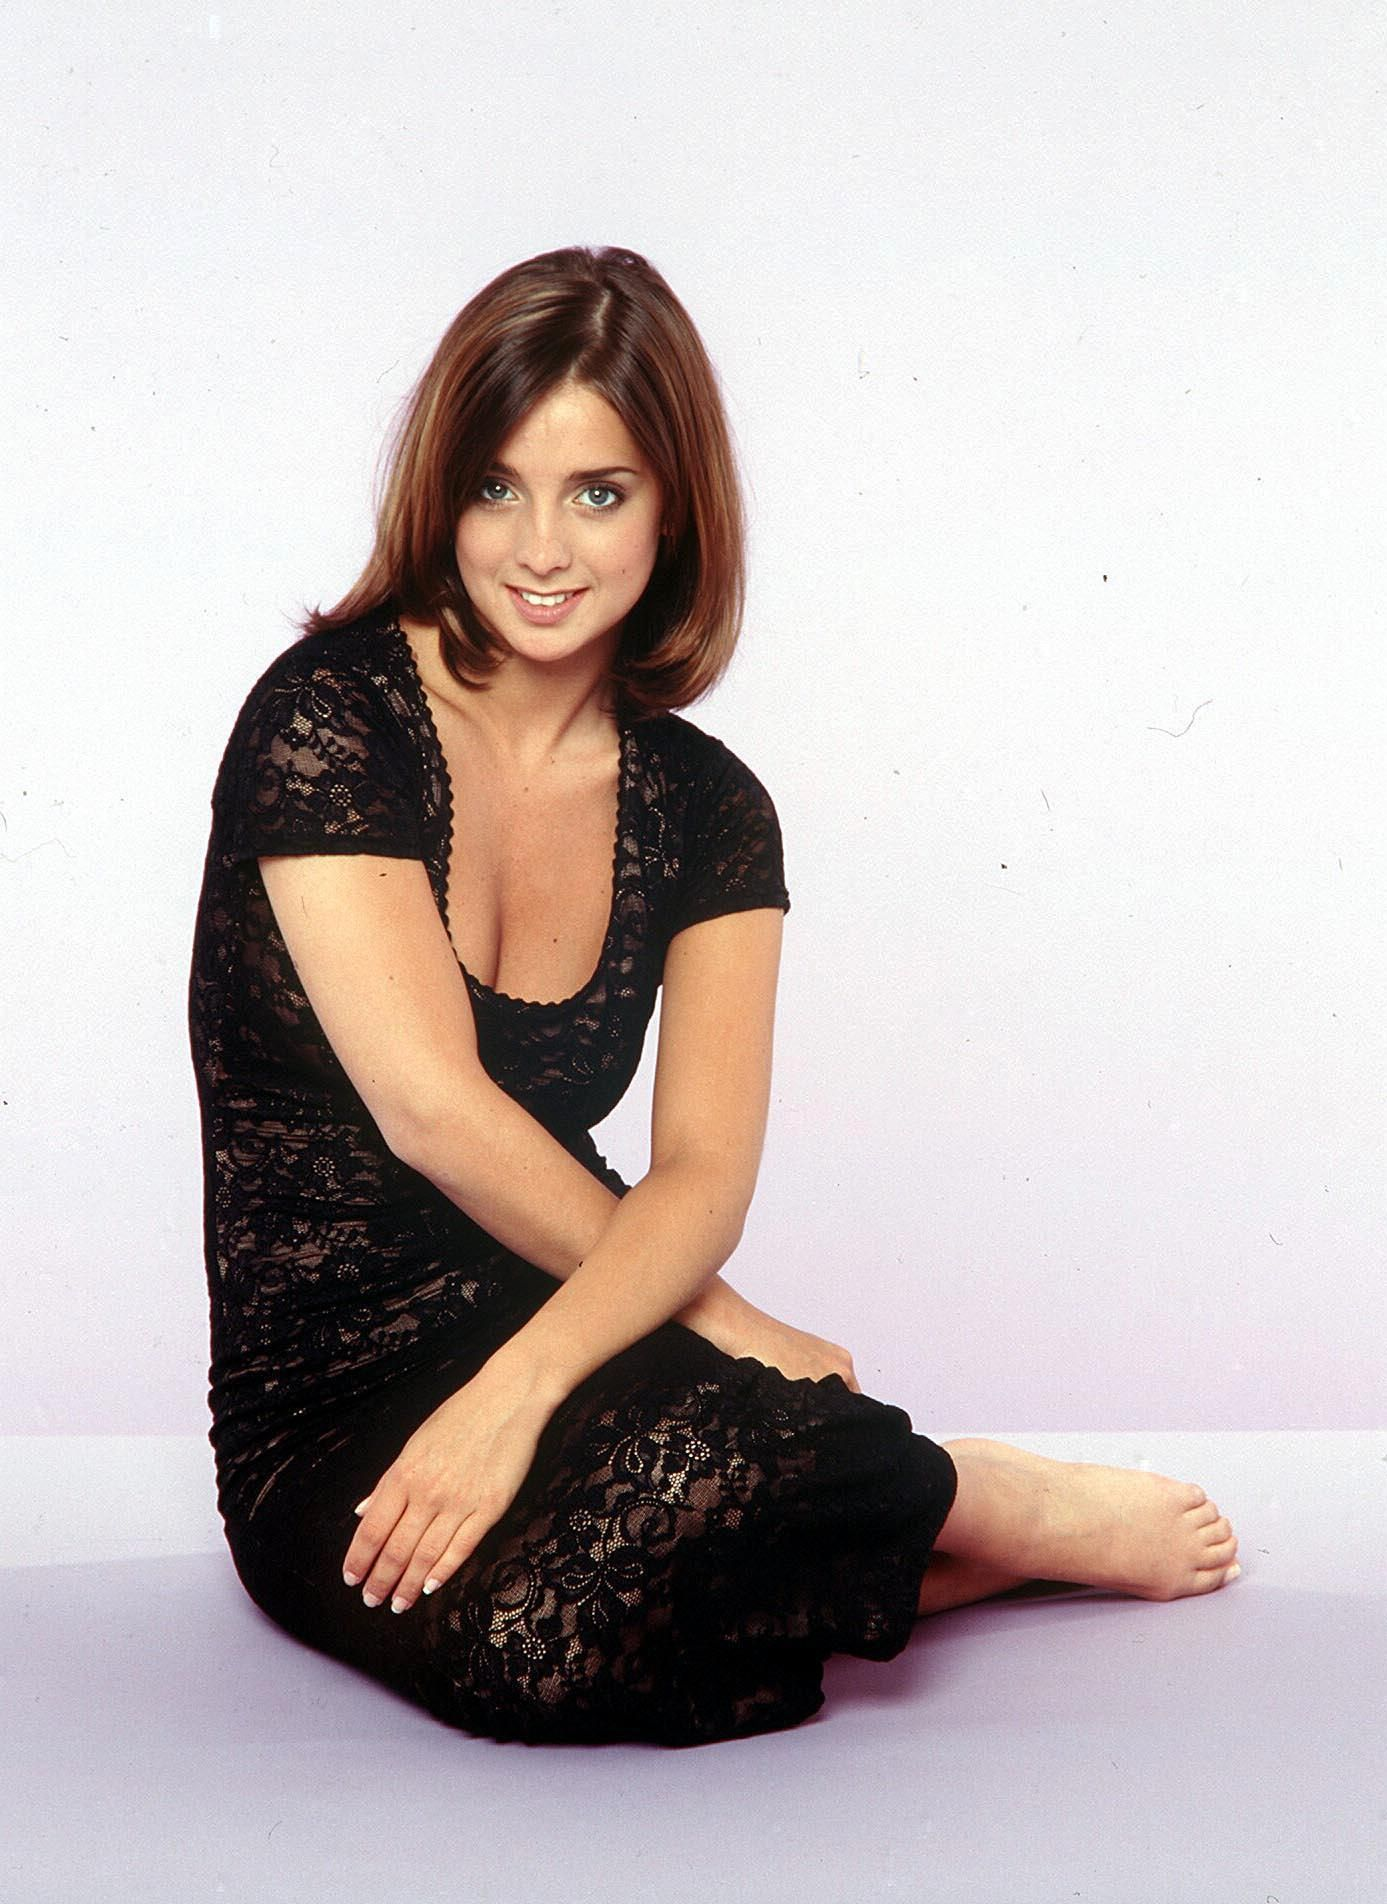 Feet Louise Redknapp naked (28 photos), Ass, Bikini, Boobs, cameltoe 2020